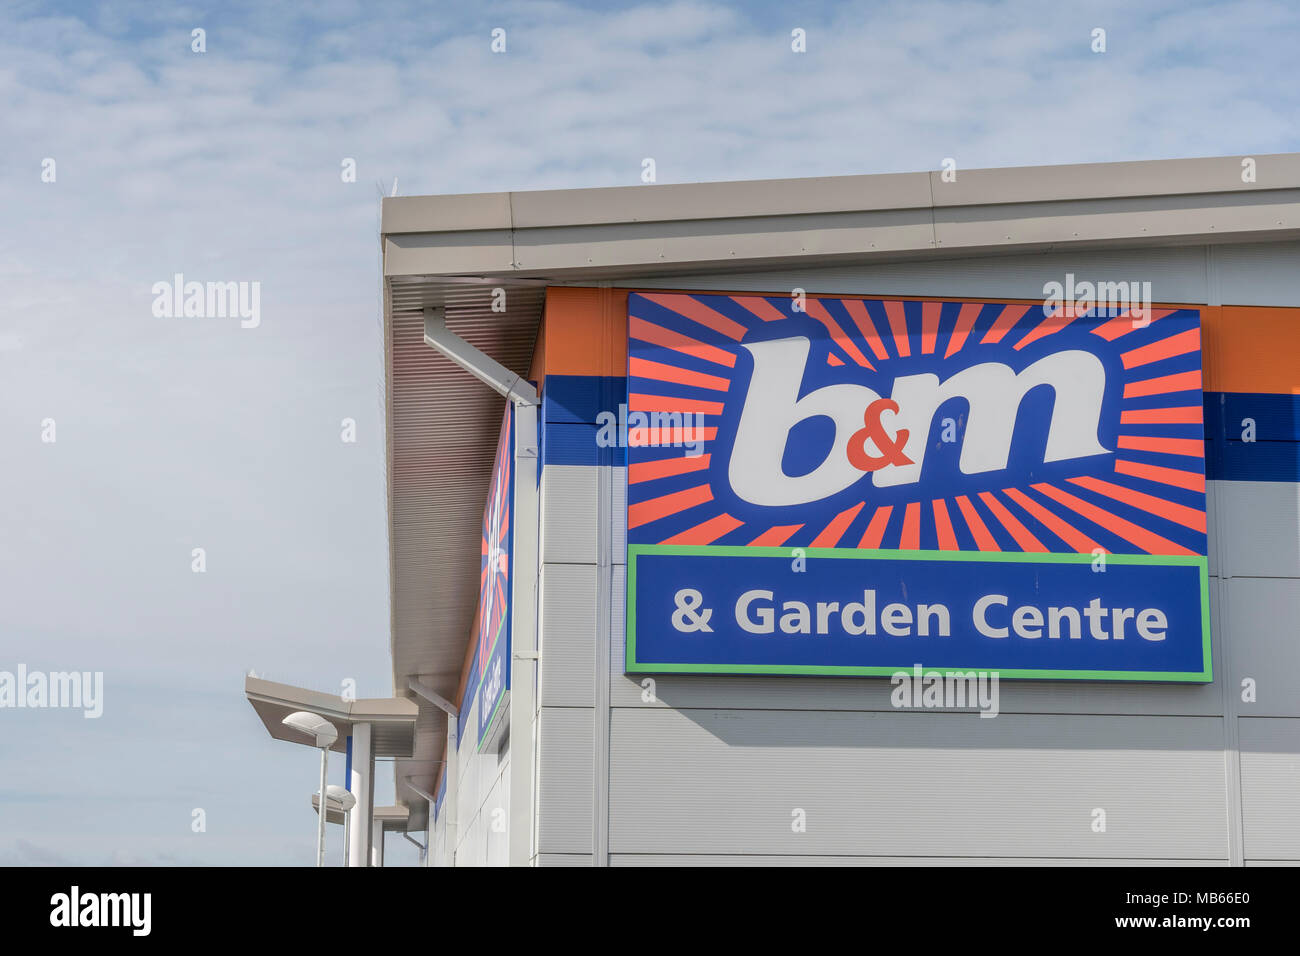 Exterior of B&M Homestore shop / store in Bodmin, Cornwall. B&M is a highly successful and fast growing retailer in a tough retail market. - Stock Image